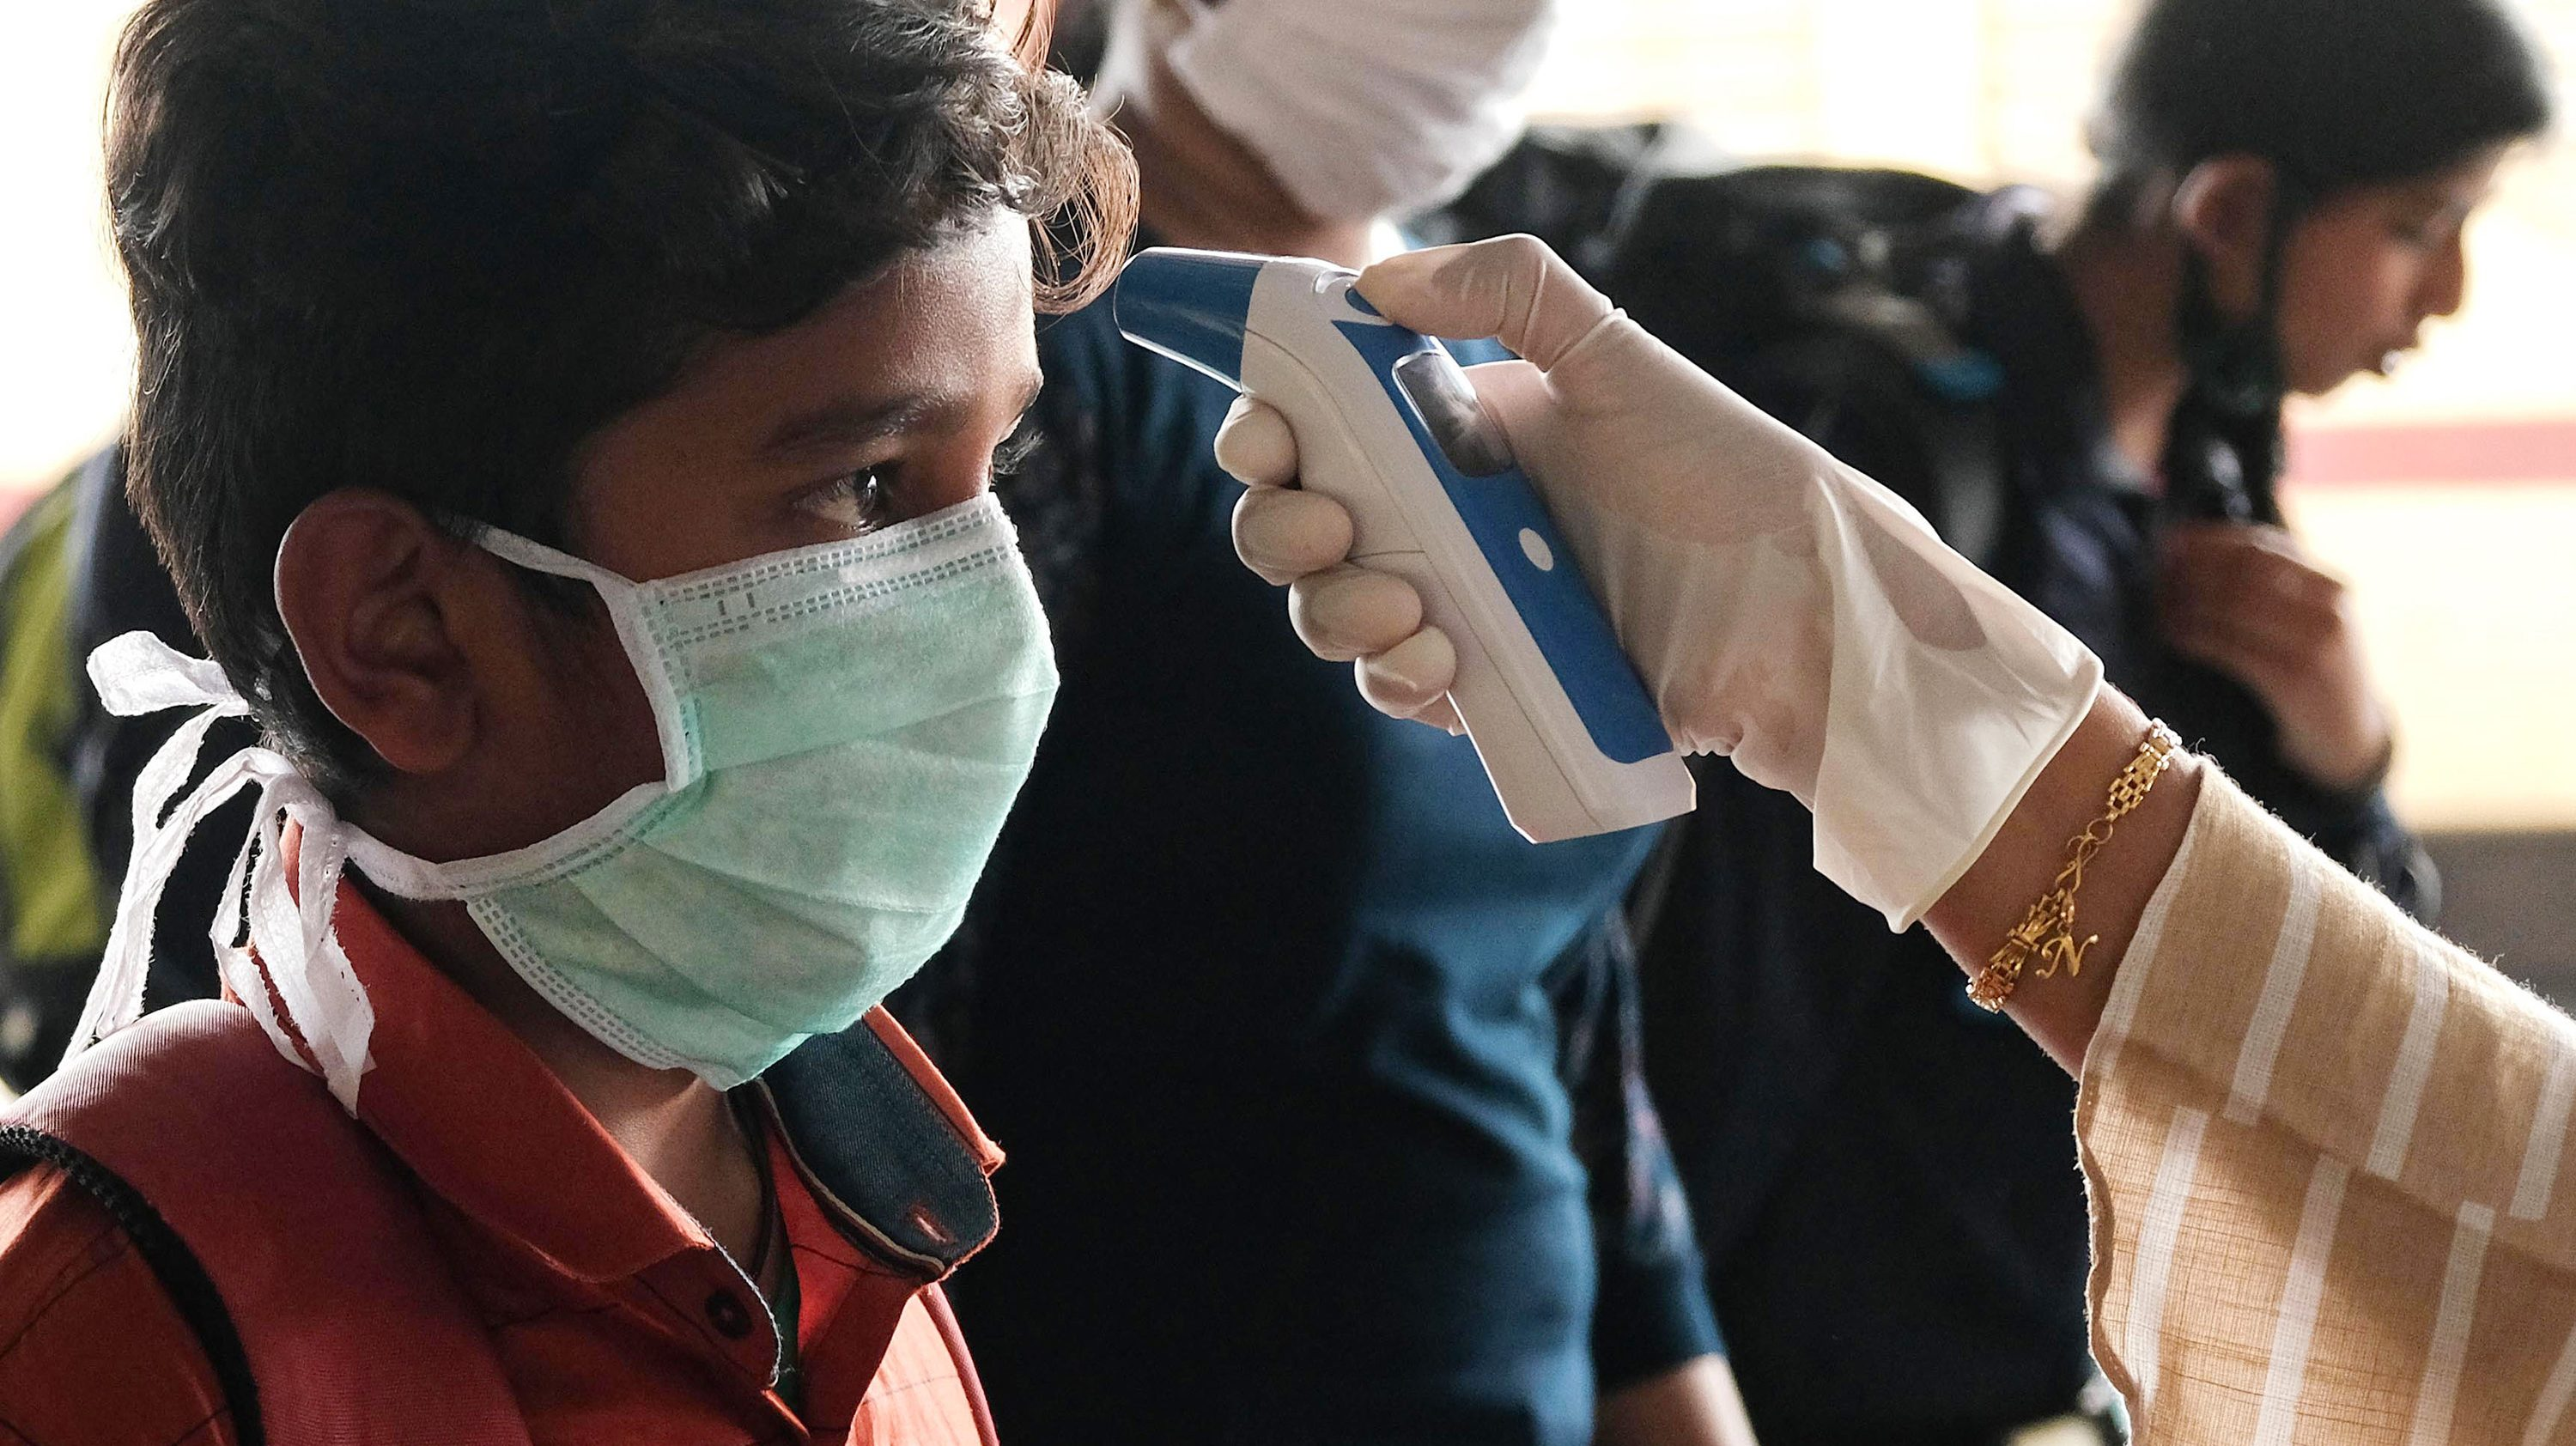 A government health worker in Kerala checks a boy's temperature.